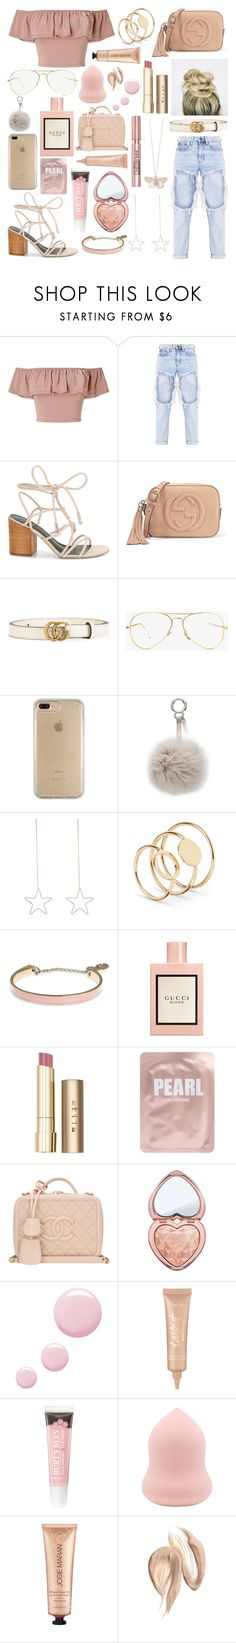 """A Daydream Away"" by ebz127 ❤ liked on Polyvore featuring Miss Selfridge, Rebecca Minkoff, Gucci, Speck, Fendi, Alex Monroe, Ivanka Trump, Stila, L'Oréal Paris and Lapcos"